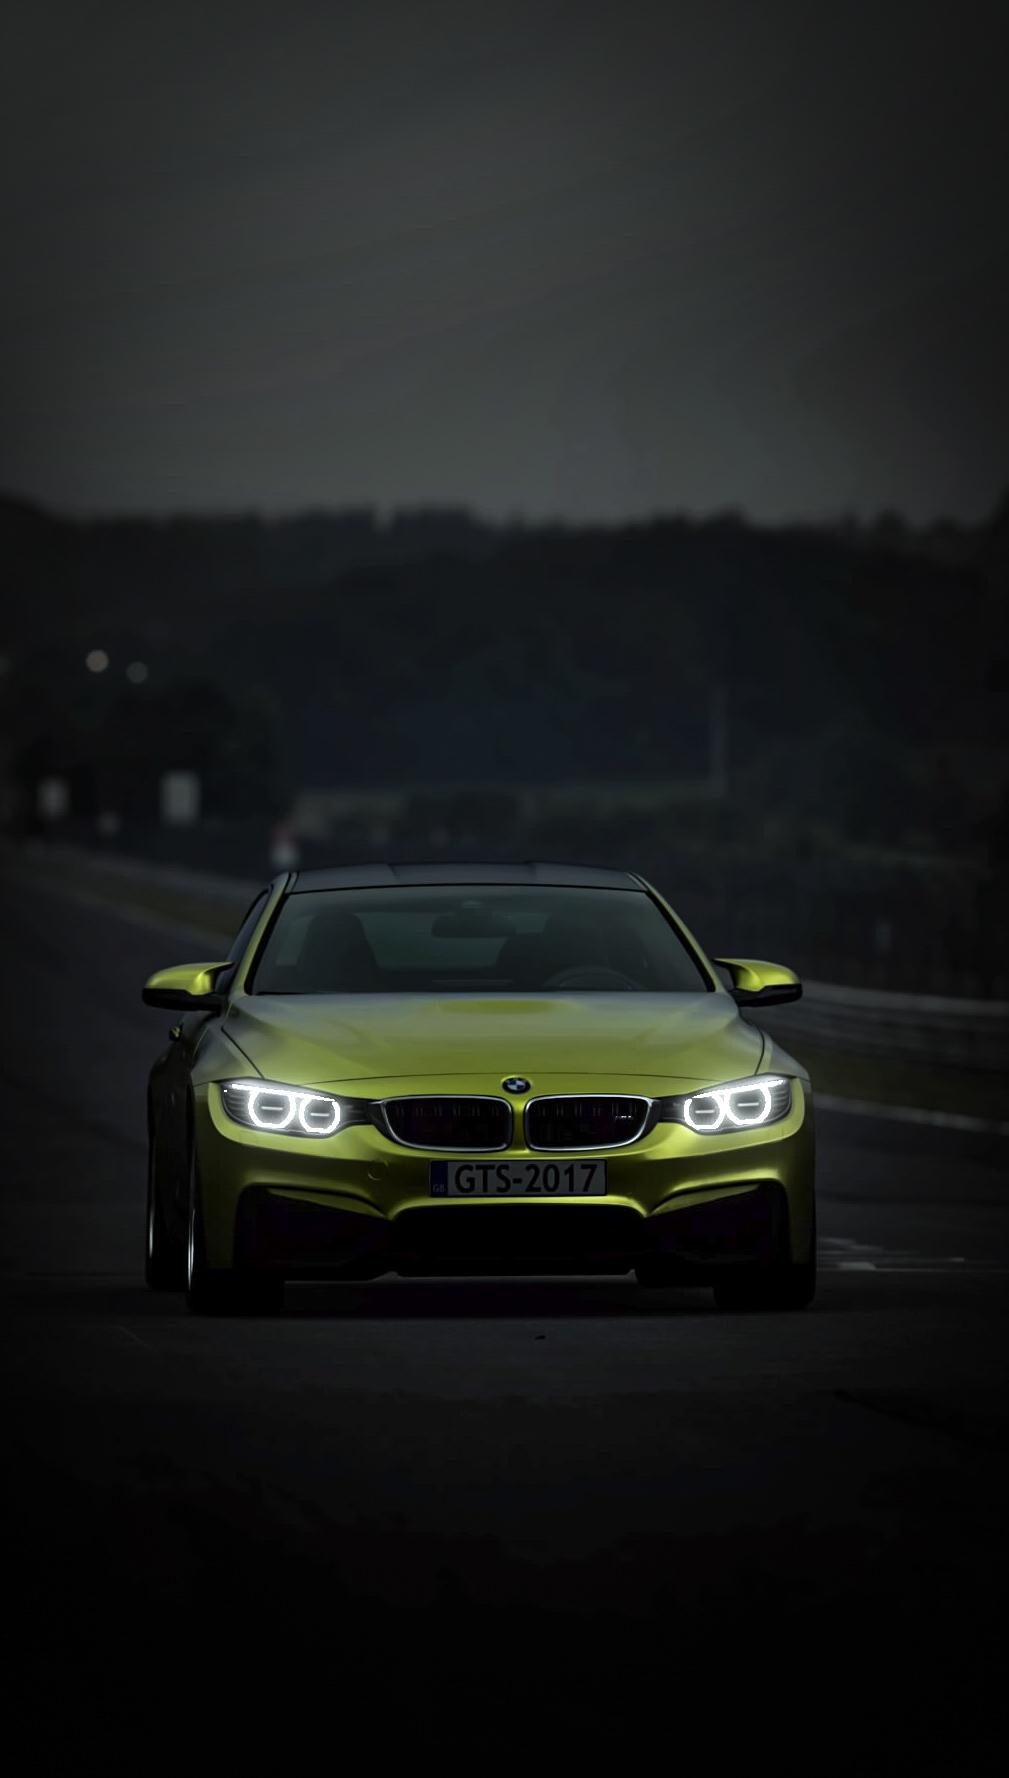 Bmw Phone Wallpapers Top Free Bmw Phone Backgrounds Wallpaperaccess